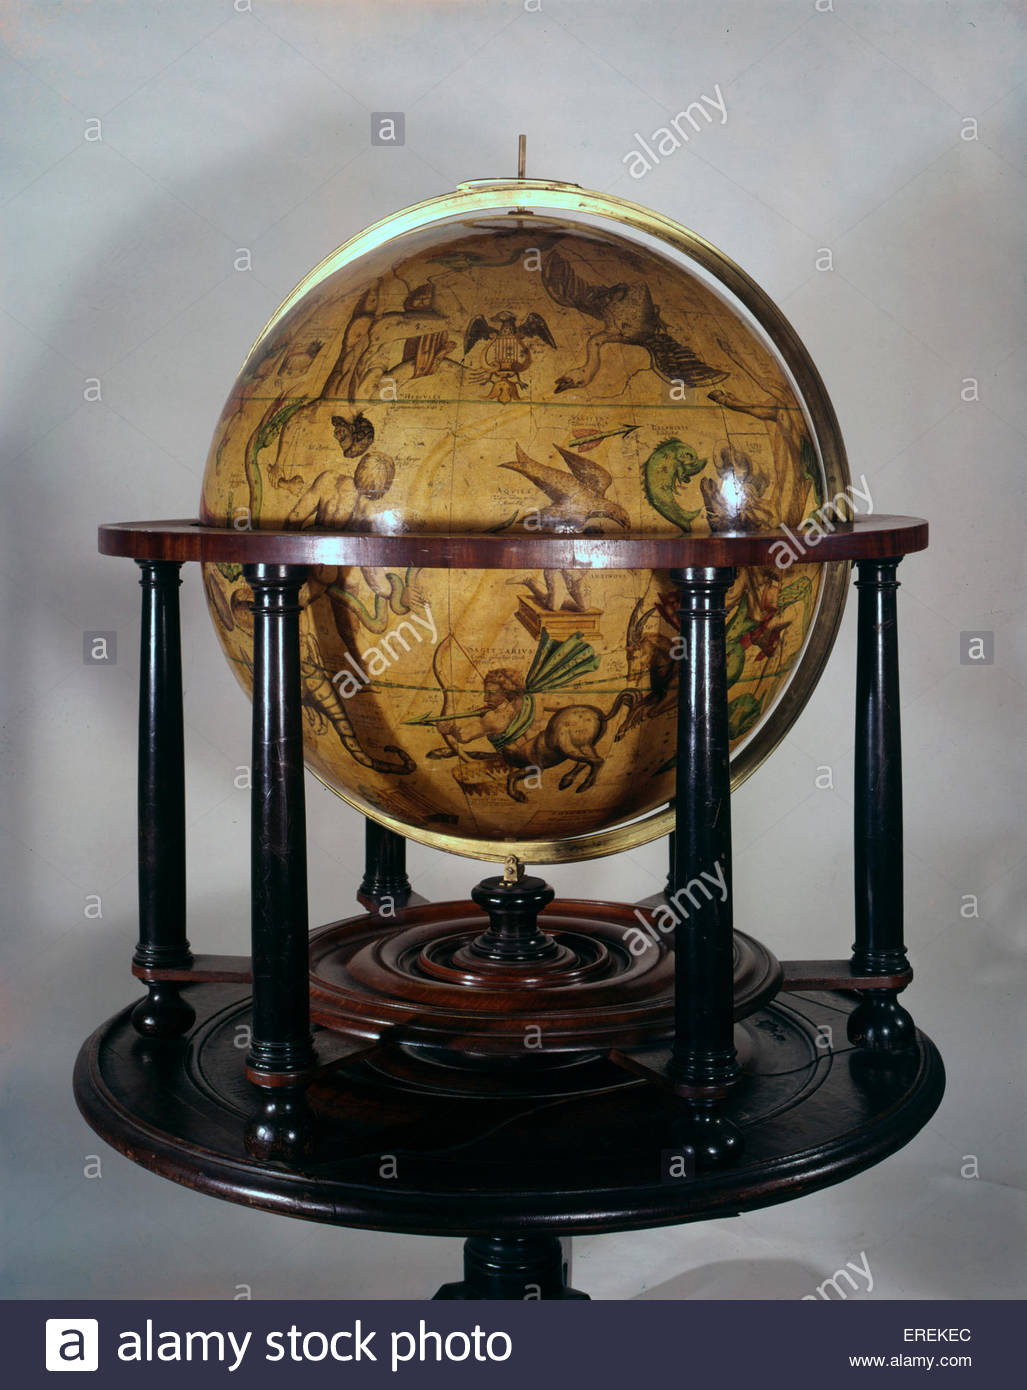 Celestial globe, made in the 16th or 17th century. With depictions animals and other creatures representing  signs - Stock Image